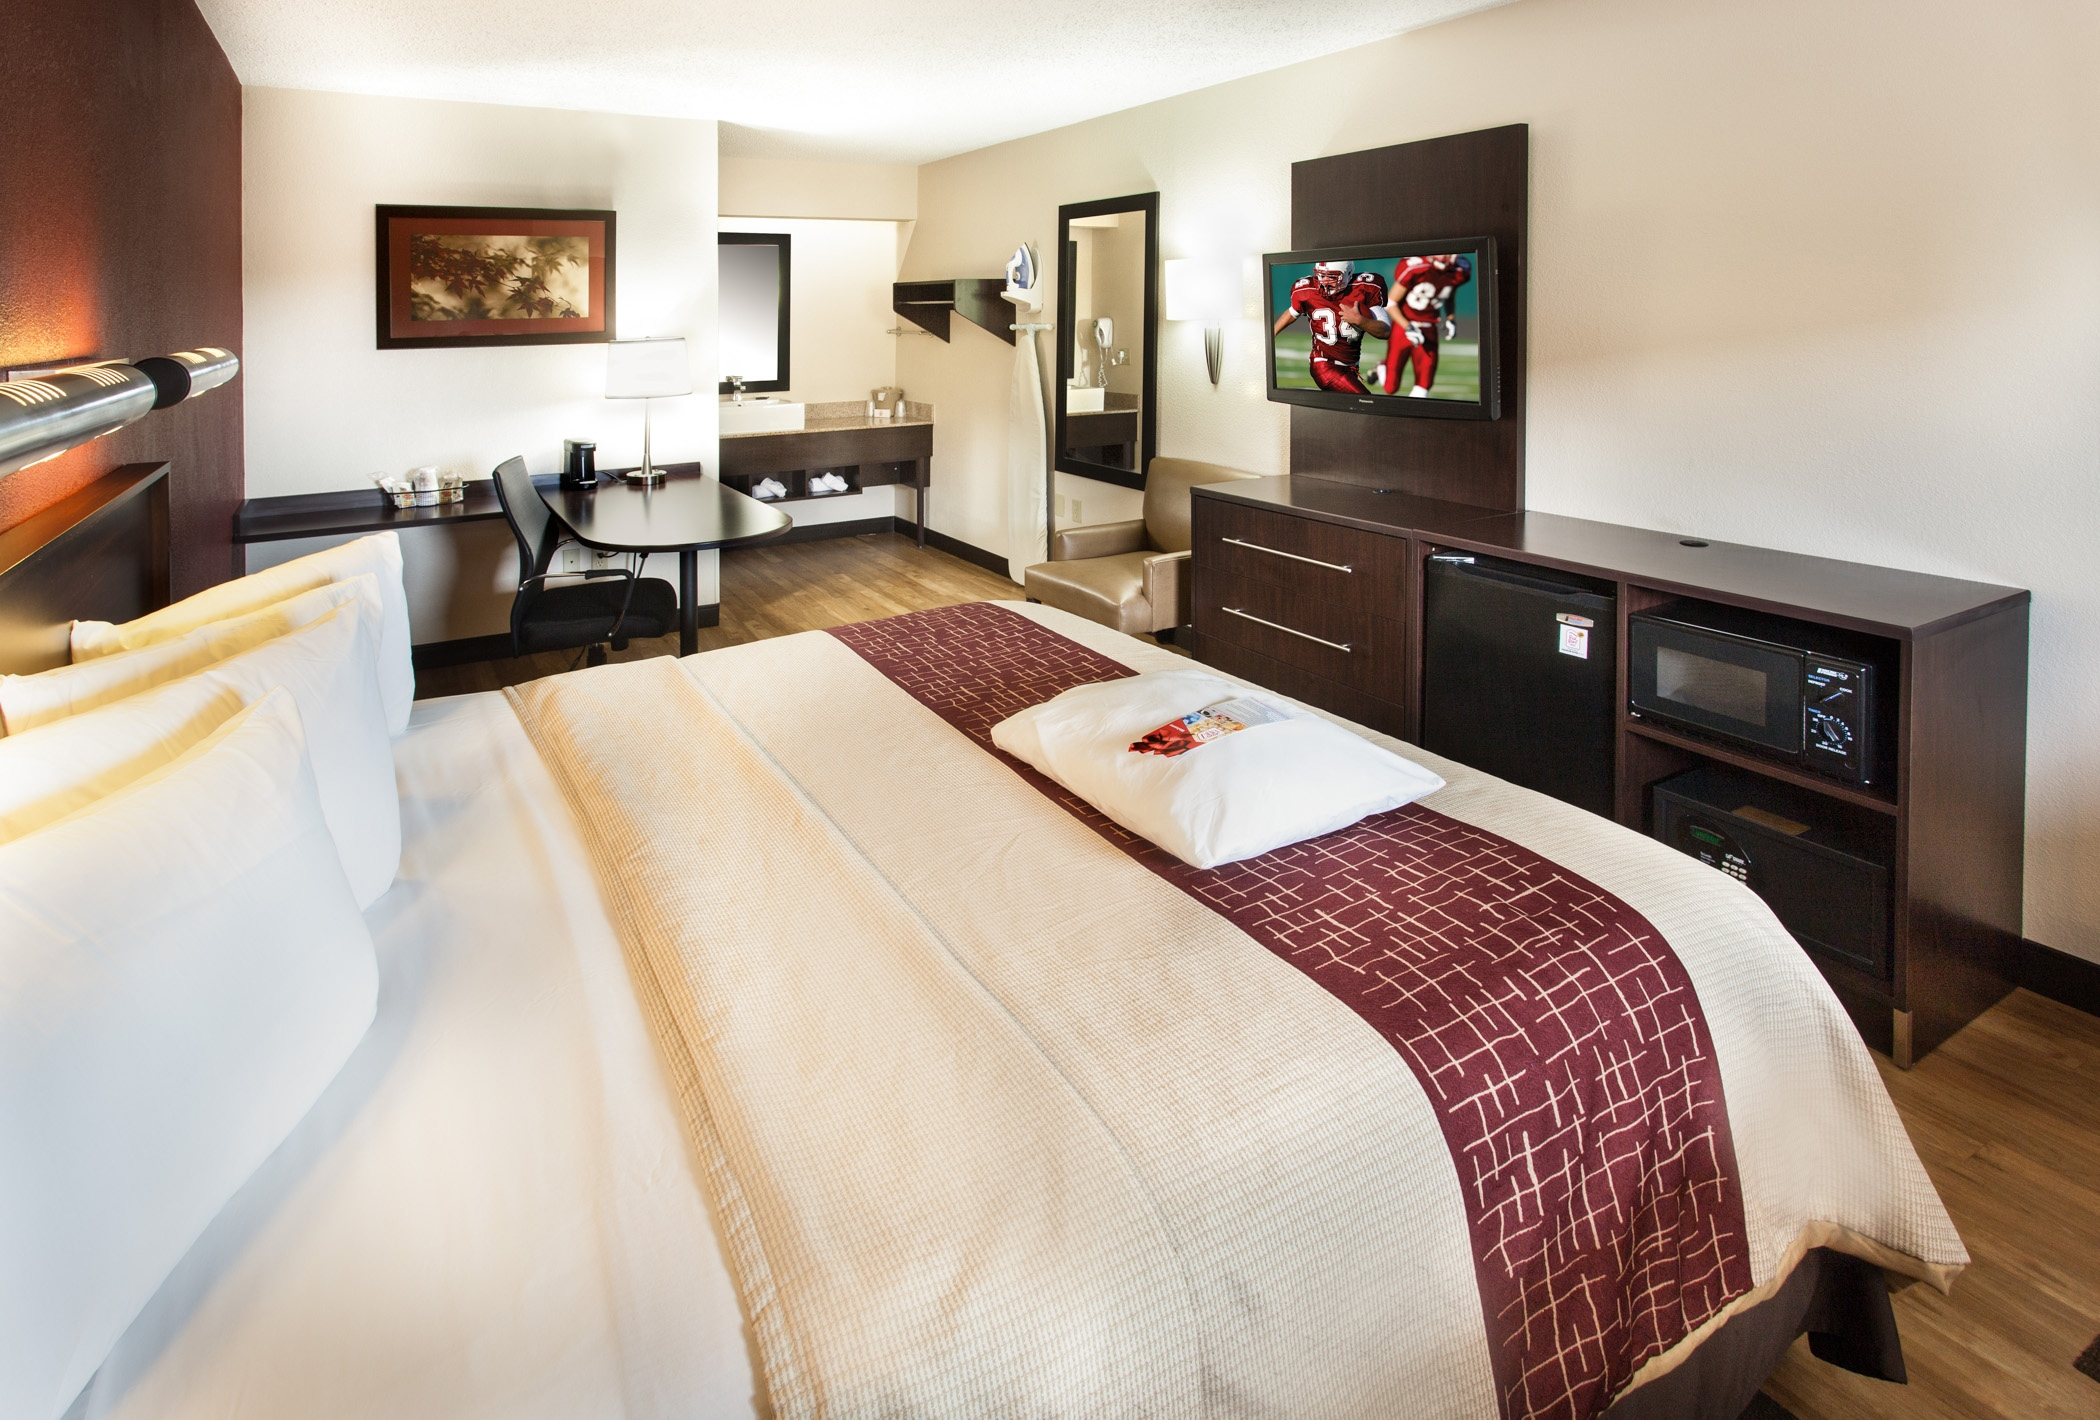 The new Red Roof PLUS+ Premium room provides an enhanced guest experience at a value price. (Photo: Business Wire)